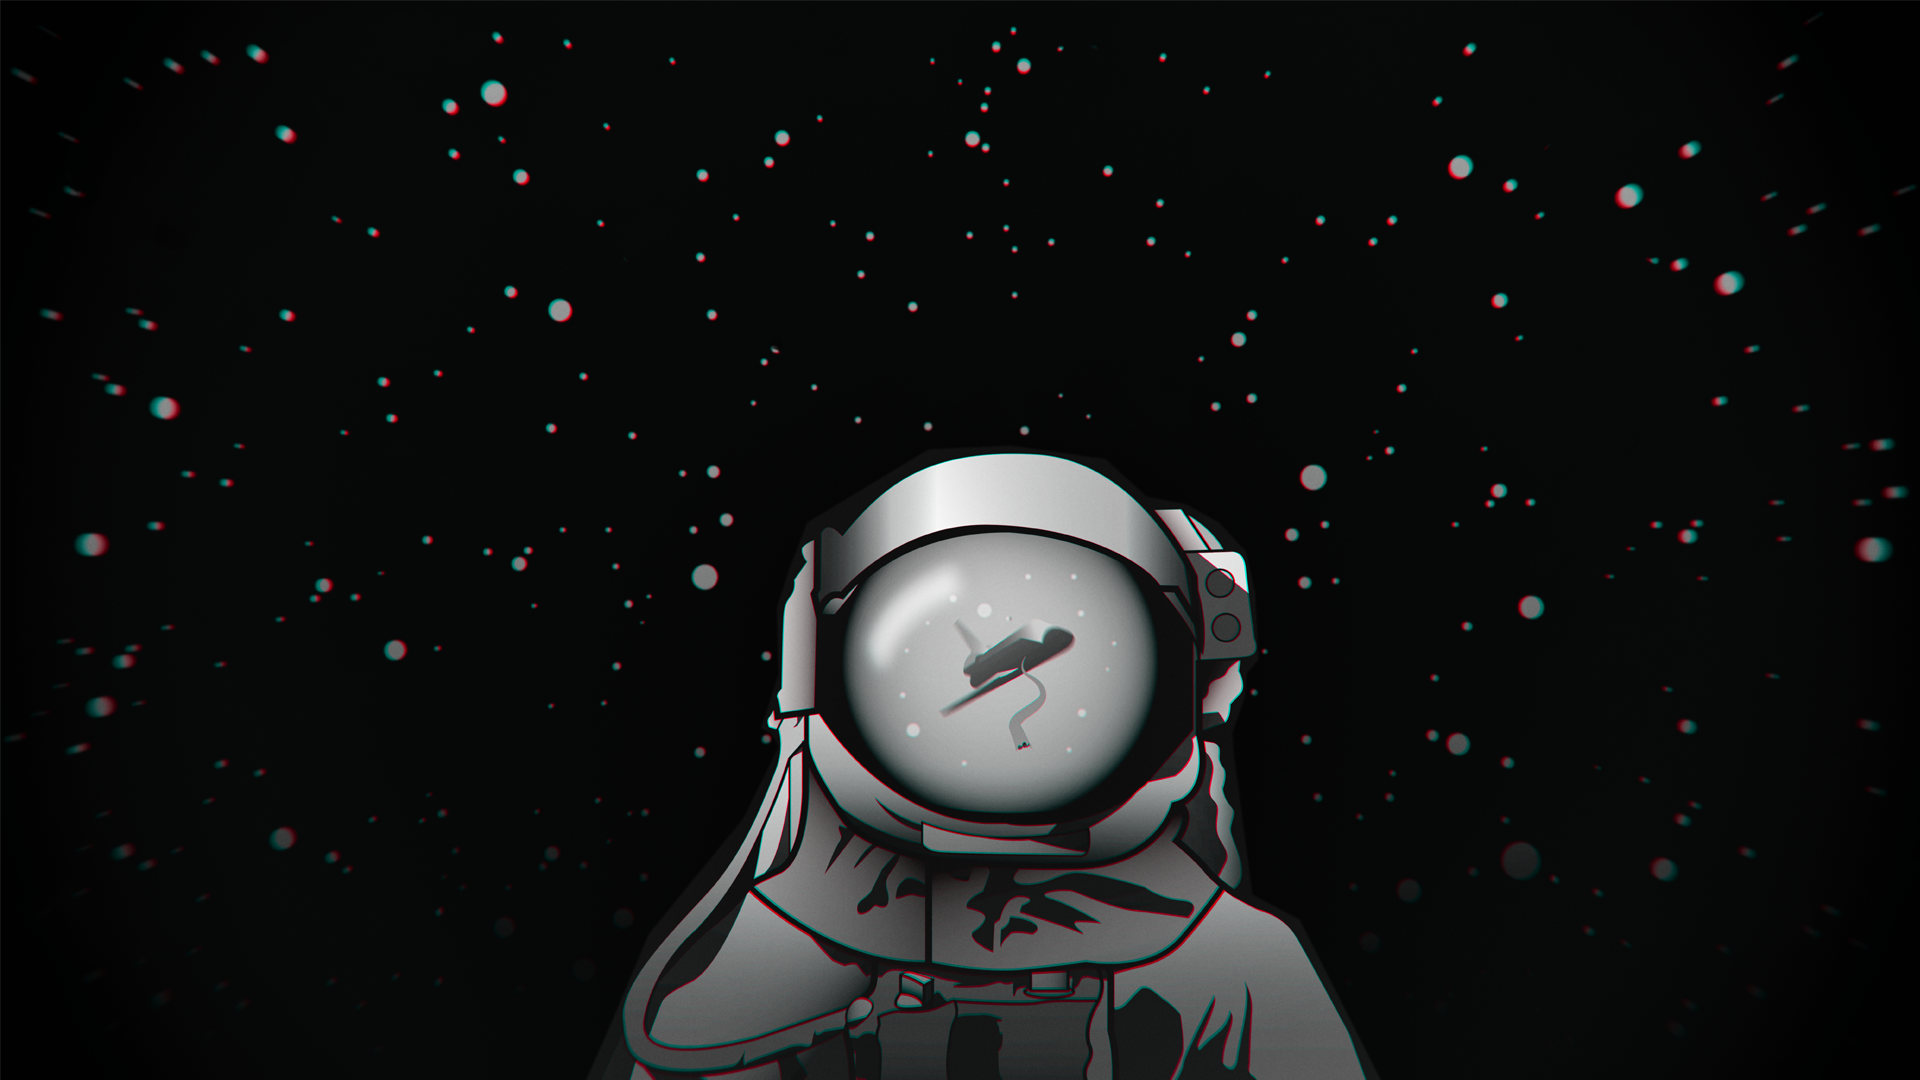 Deep Space - Wallpaper | 1920x1080 by Array1337 on DeviantArt